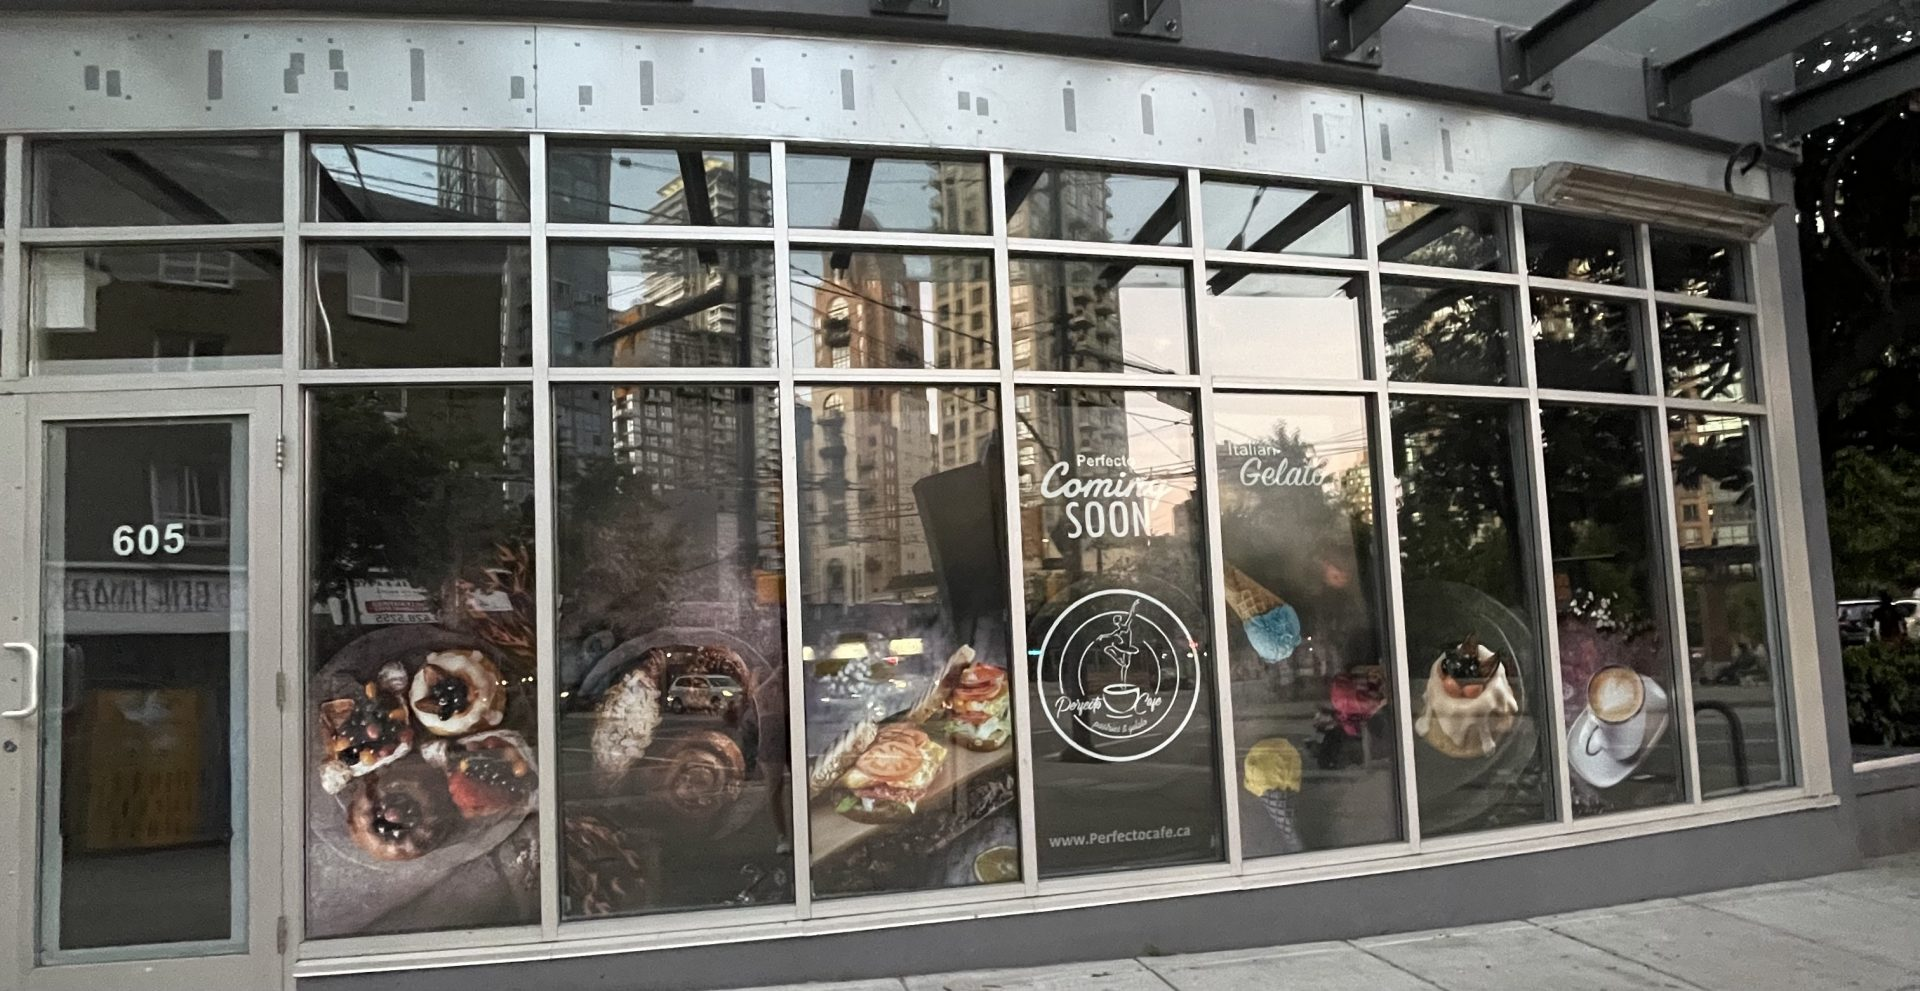 Perfecto Cafe to open soon in former downtown Starbucks location